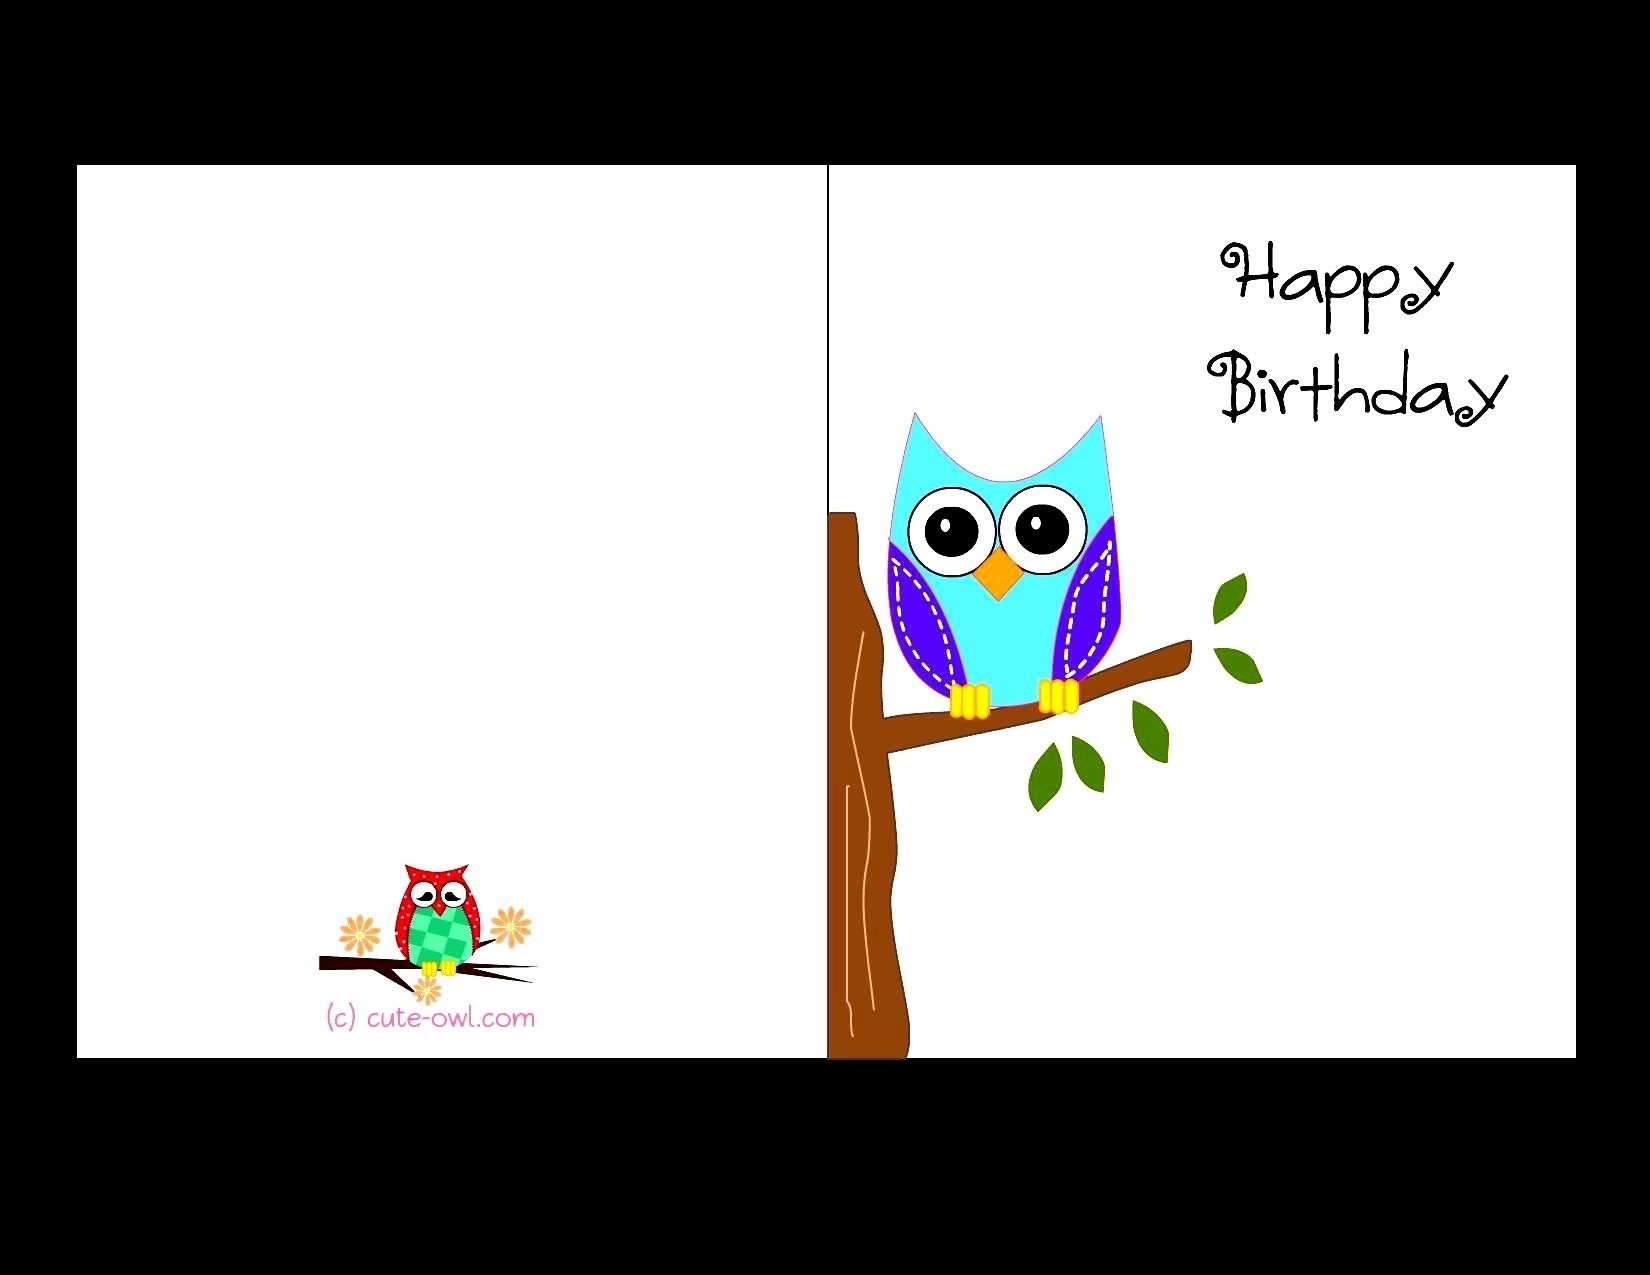 Free Printable Birthday Cards For Adults   World Of Label - Free Printable Greeting Cards No Sign Up